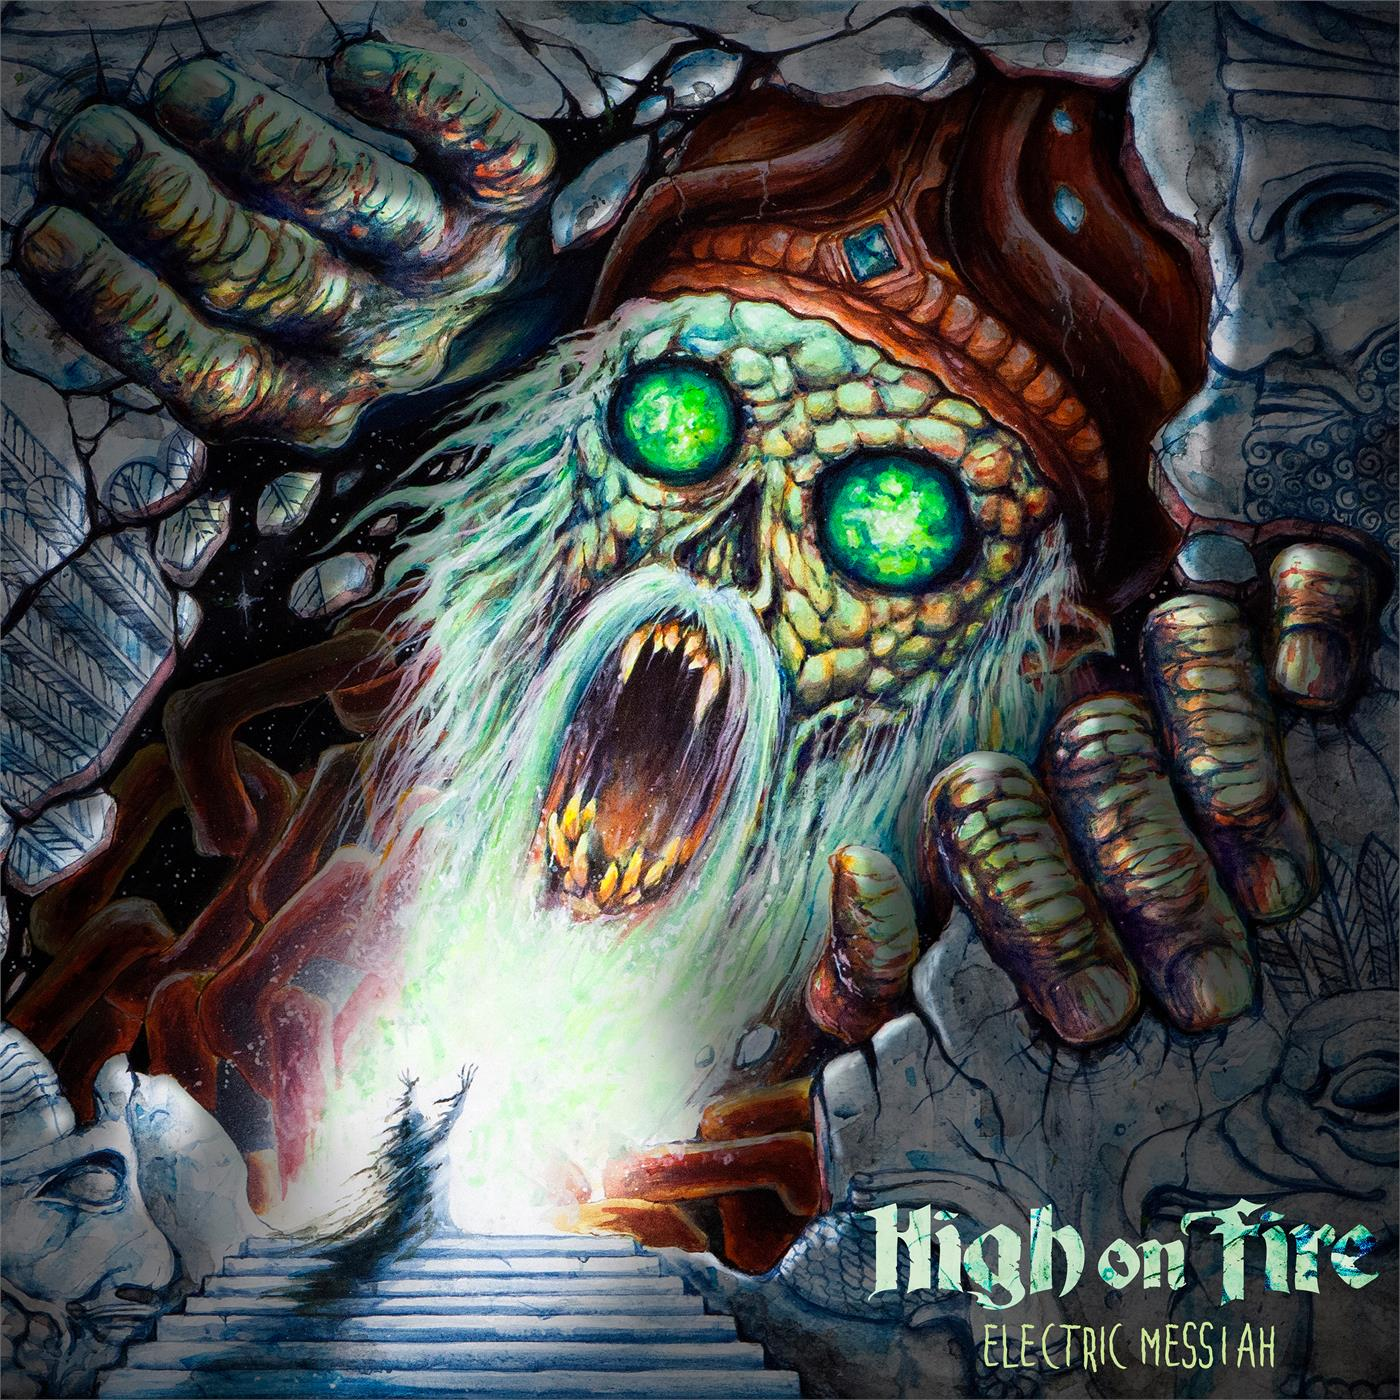 High On Fire - Electric Messiah [2xLP]